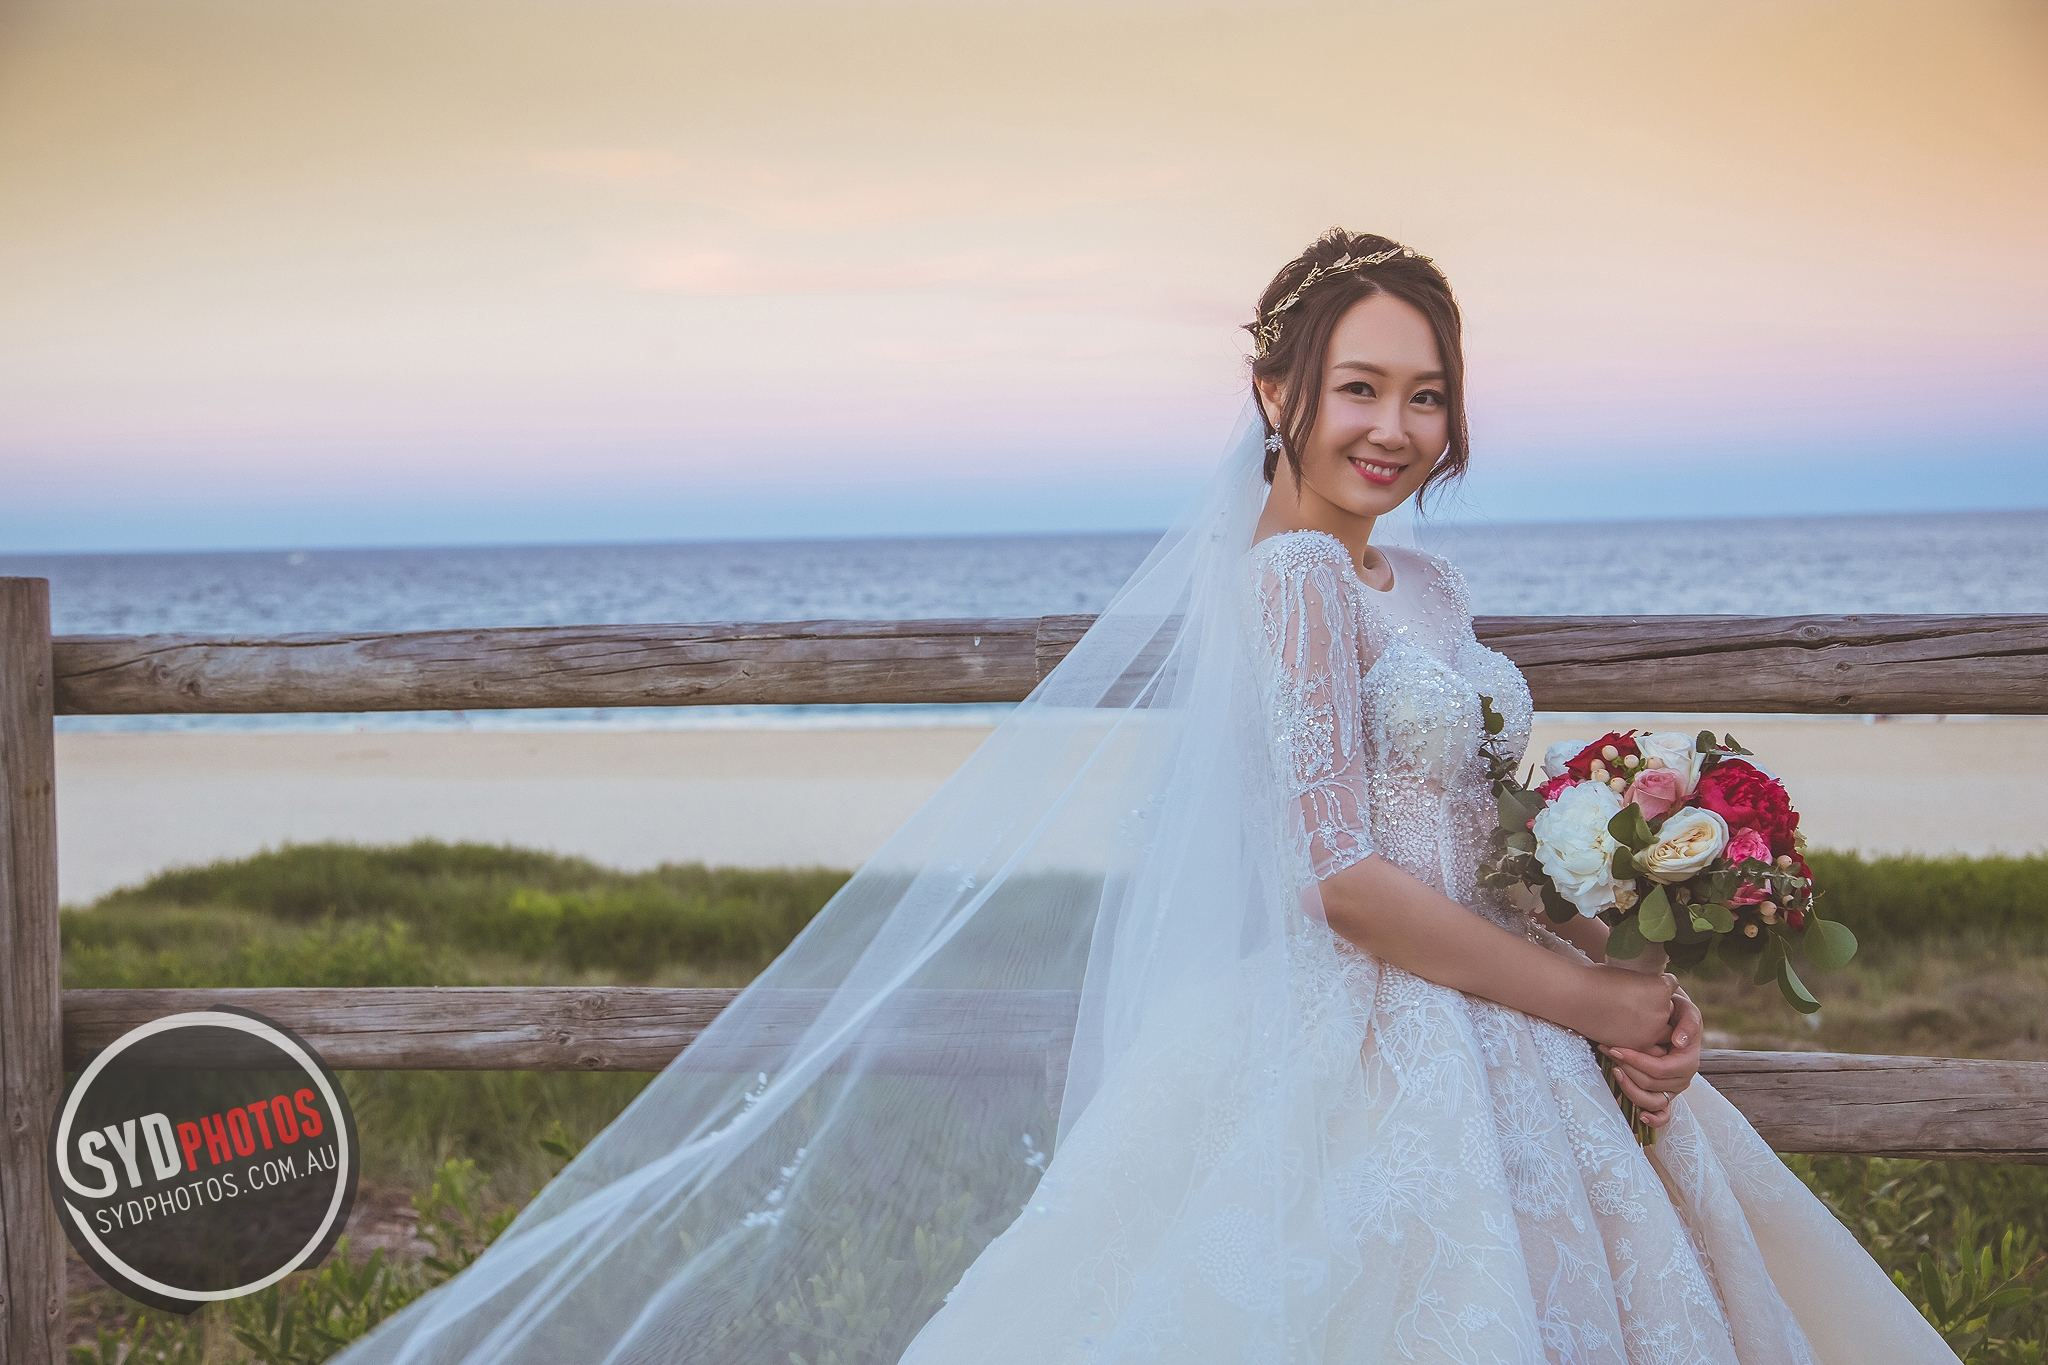 ID-107098-20190525-458.jpg, By Photographer Sydphotos.wedding, Created on 10 Jul 2019, SYDPHOTOS Photography all rights reserved.